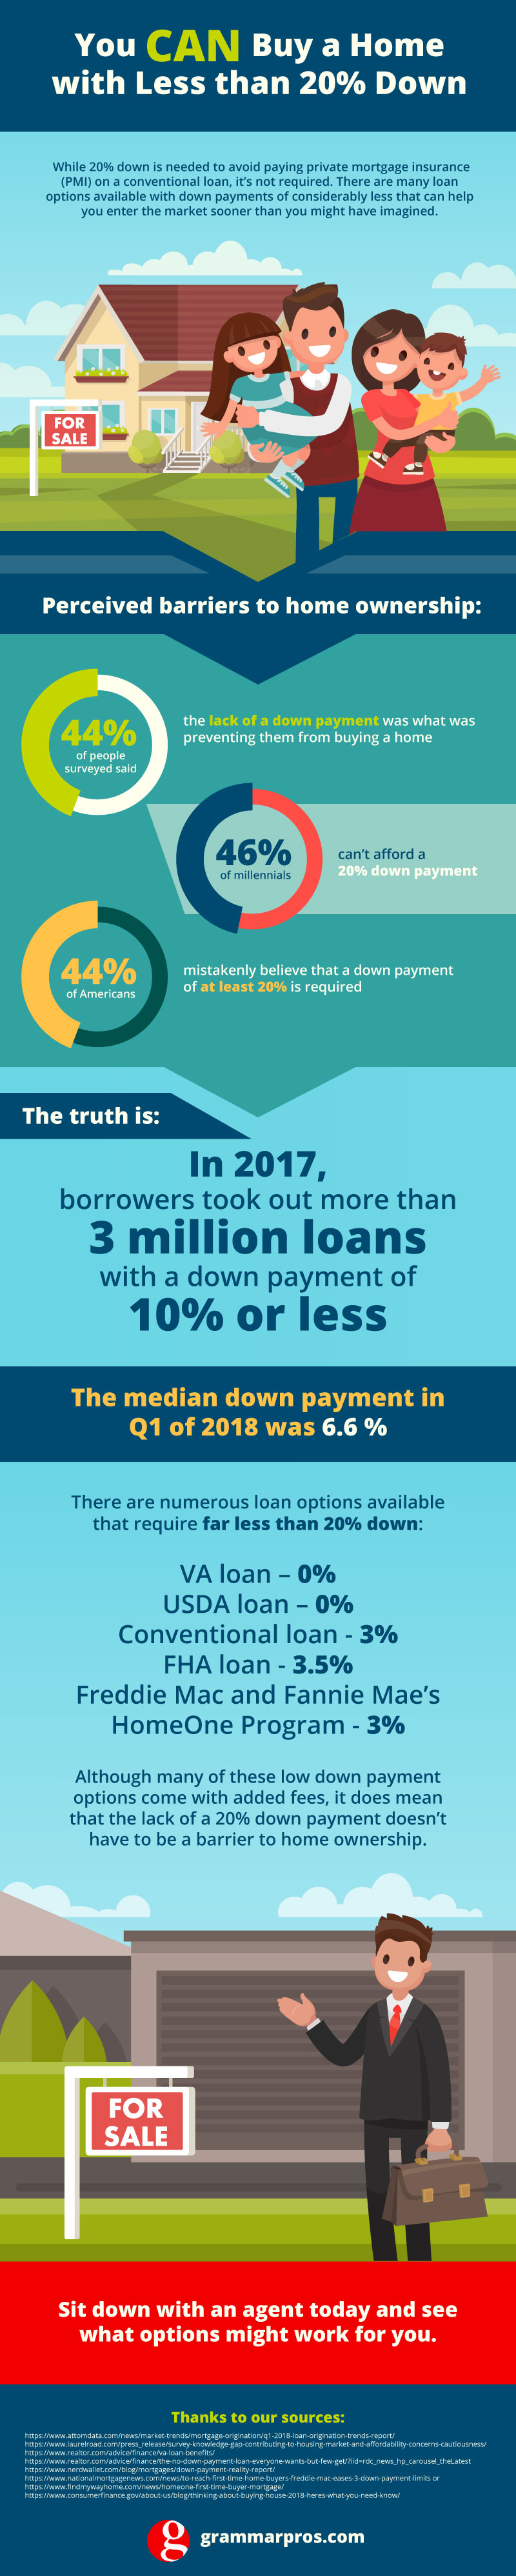 Infographic - Myth of 20 Percent Down Payment